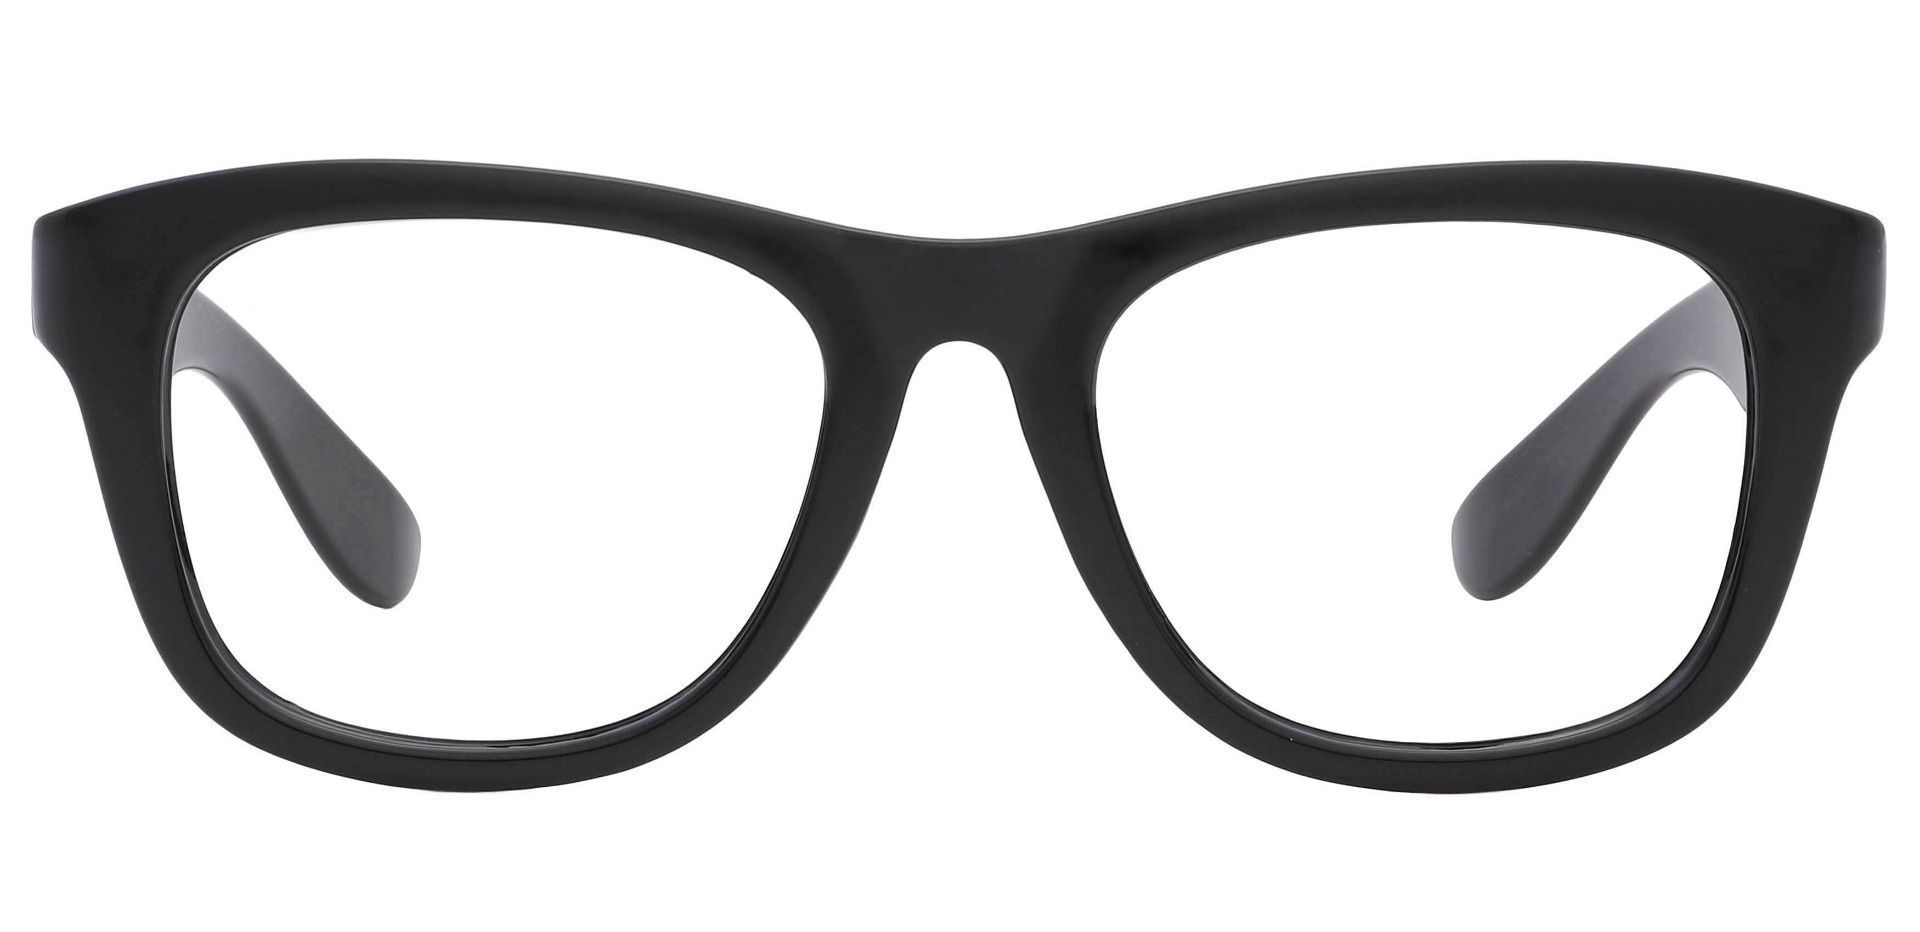 Callie Square Lined Bifocal Glasses - Black